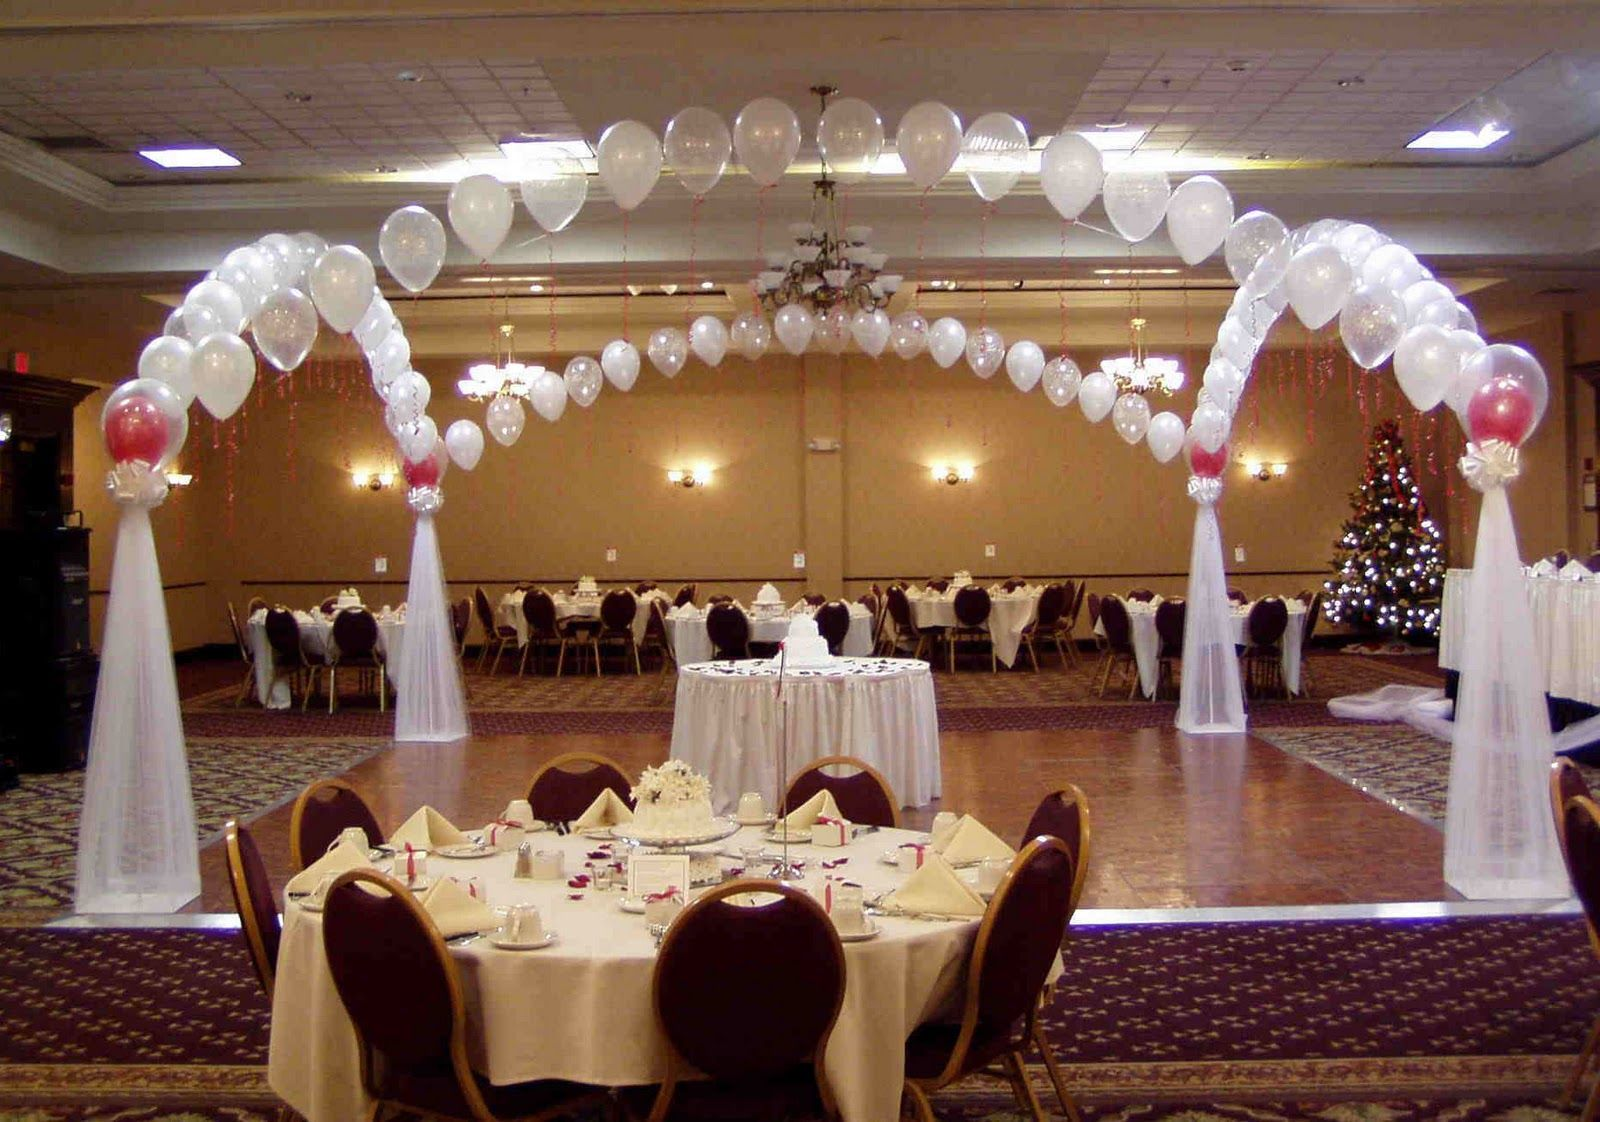 Venue decorations one great way to decorate the venue with wedding indian wedding decoration ideas home included wedding decoration ideas on a small budget and wedding decoration ideas red and white with wedding decorations junglespirit Images